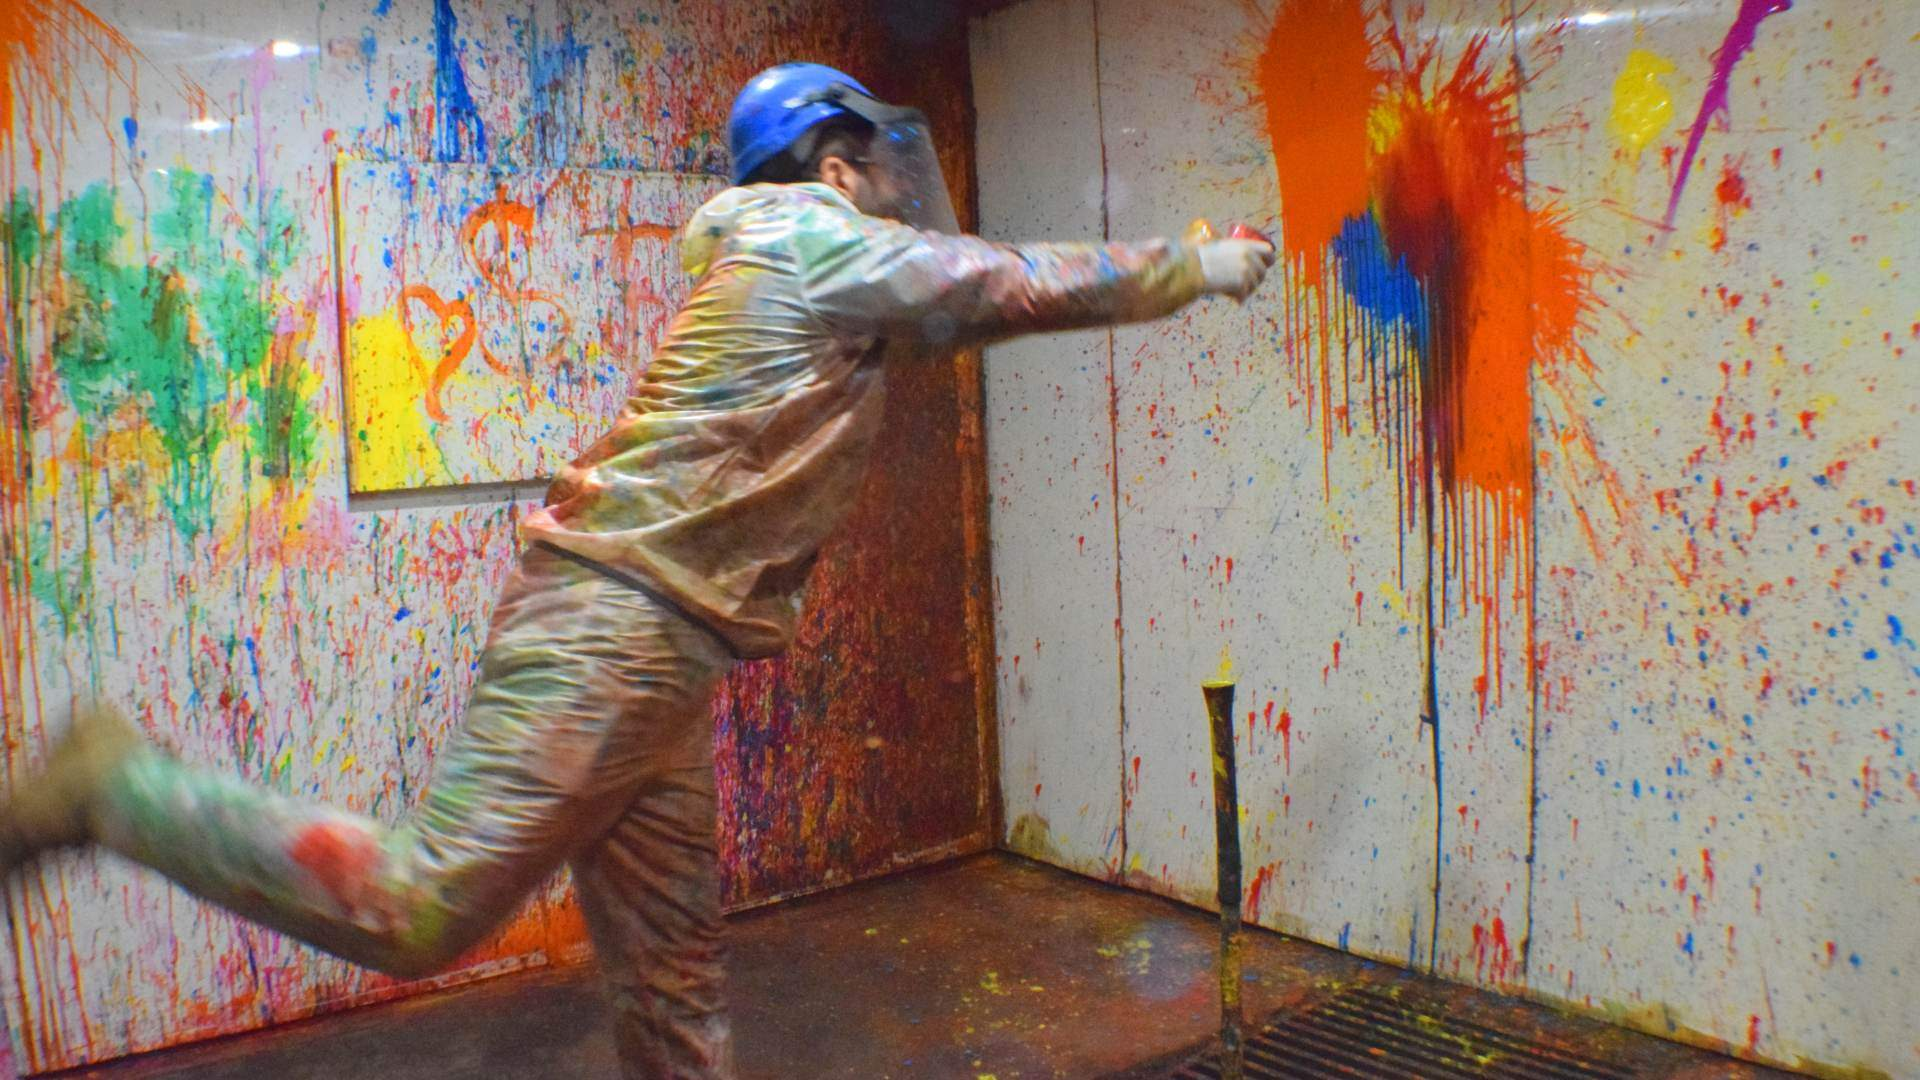 Smash Splash Is Melbourne's New Warehouse Where You Can Hurl Paint at Walls